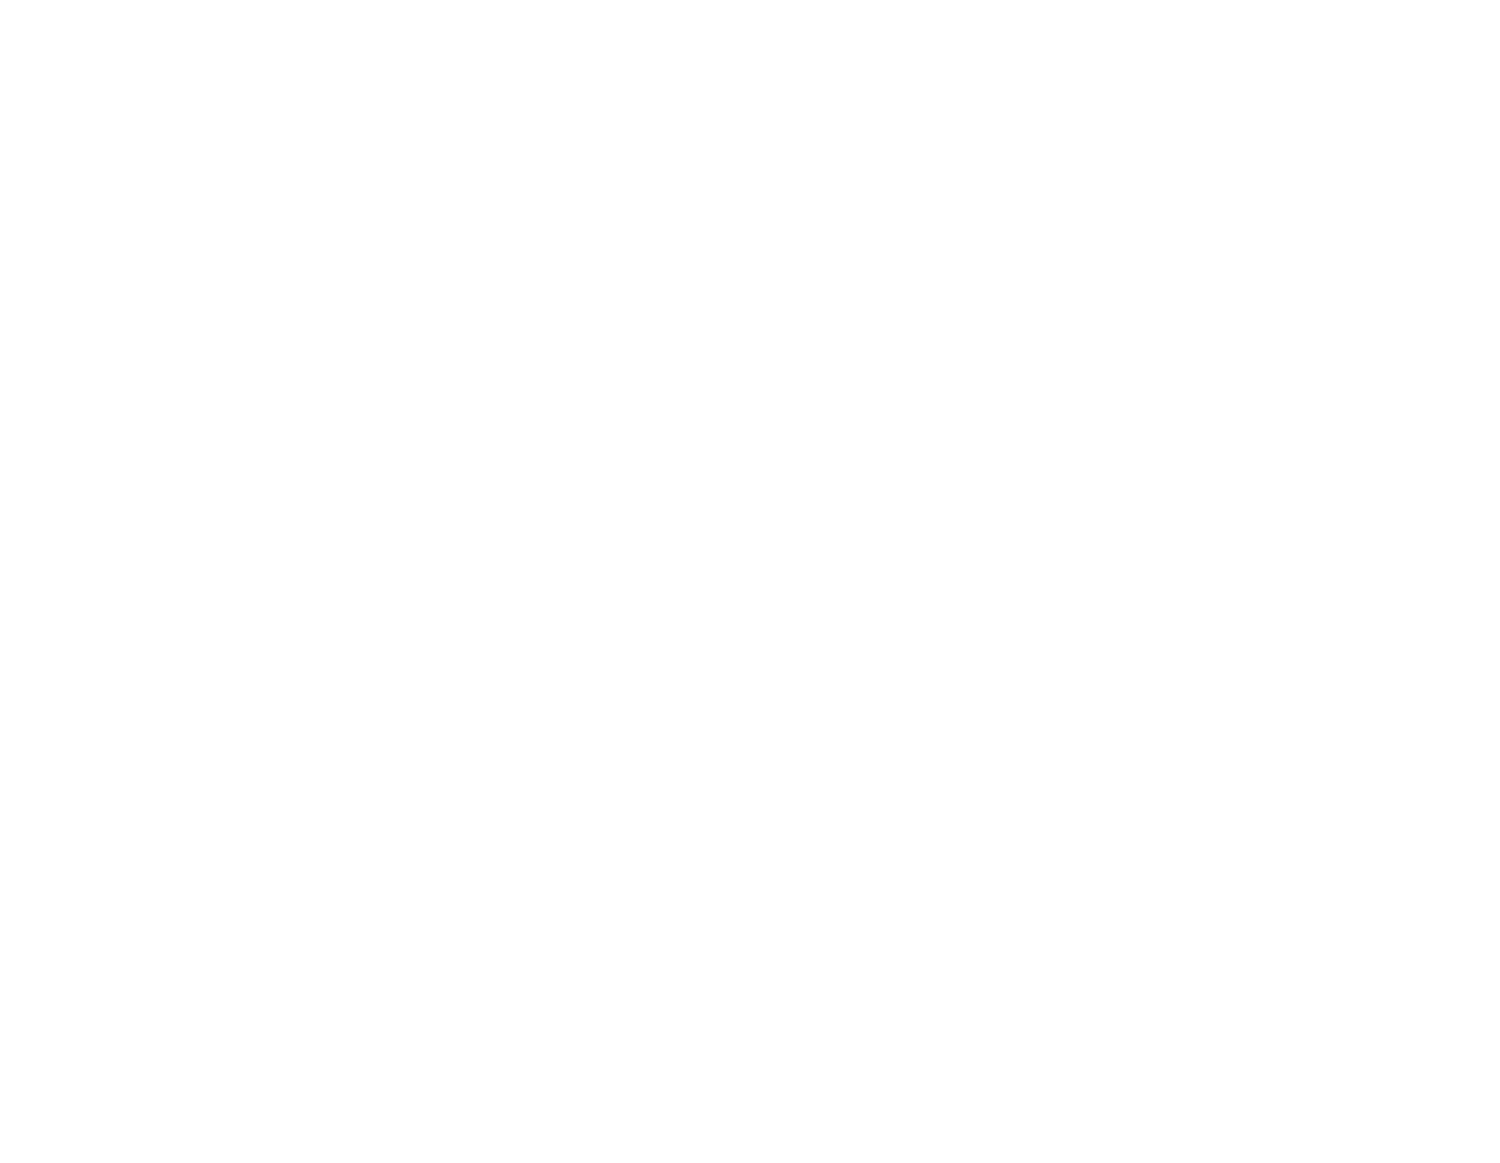 Southern Housewives Planning